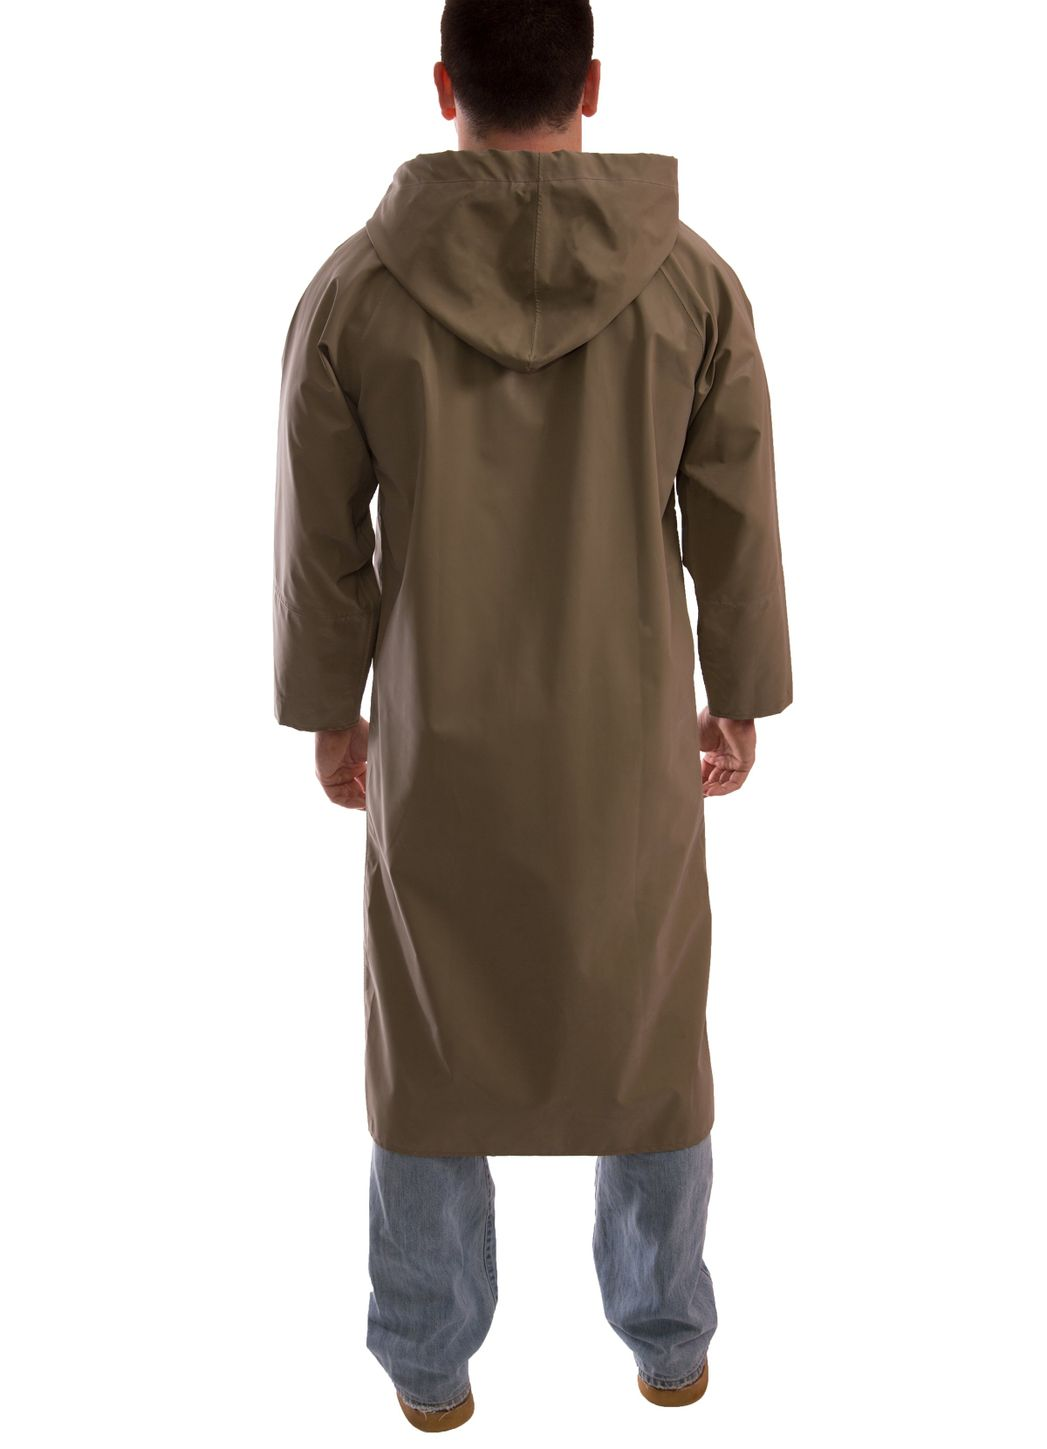 tingley-magnaprene-fire-resistant-rain-coat-neoprene-coated-chemical-resistant-with-attached-hood-48inch-back.jpg